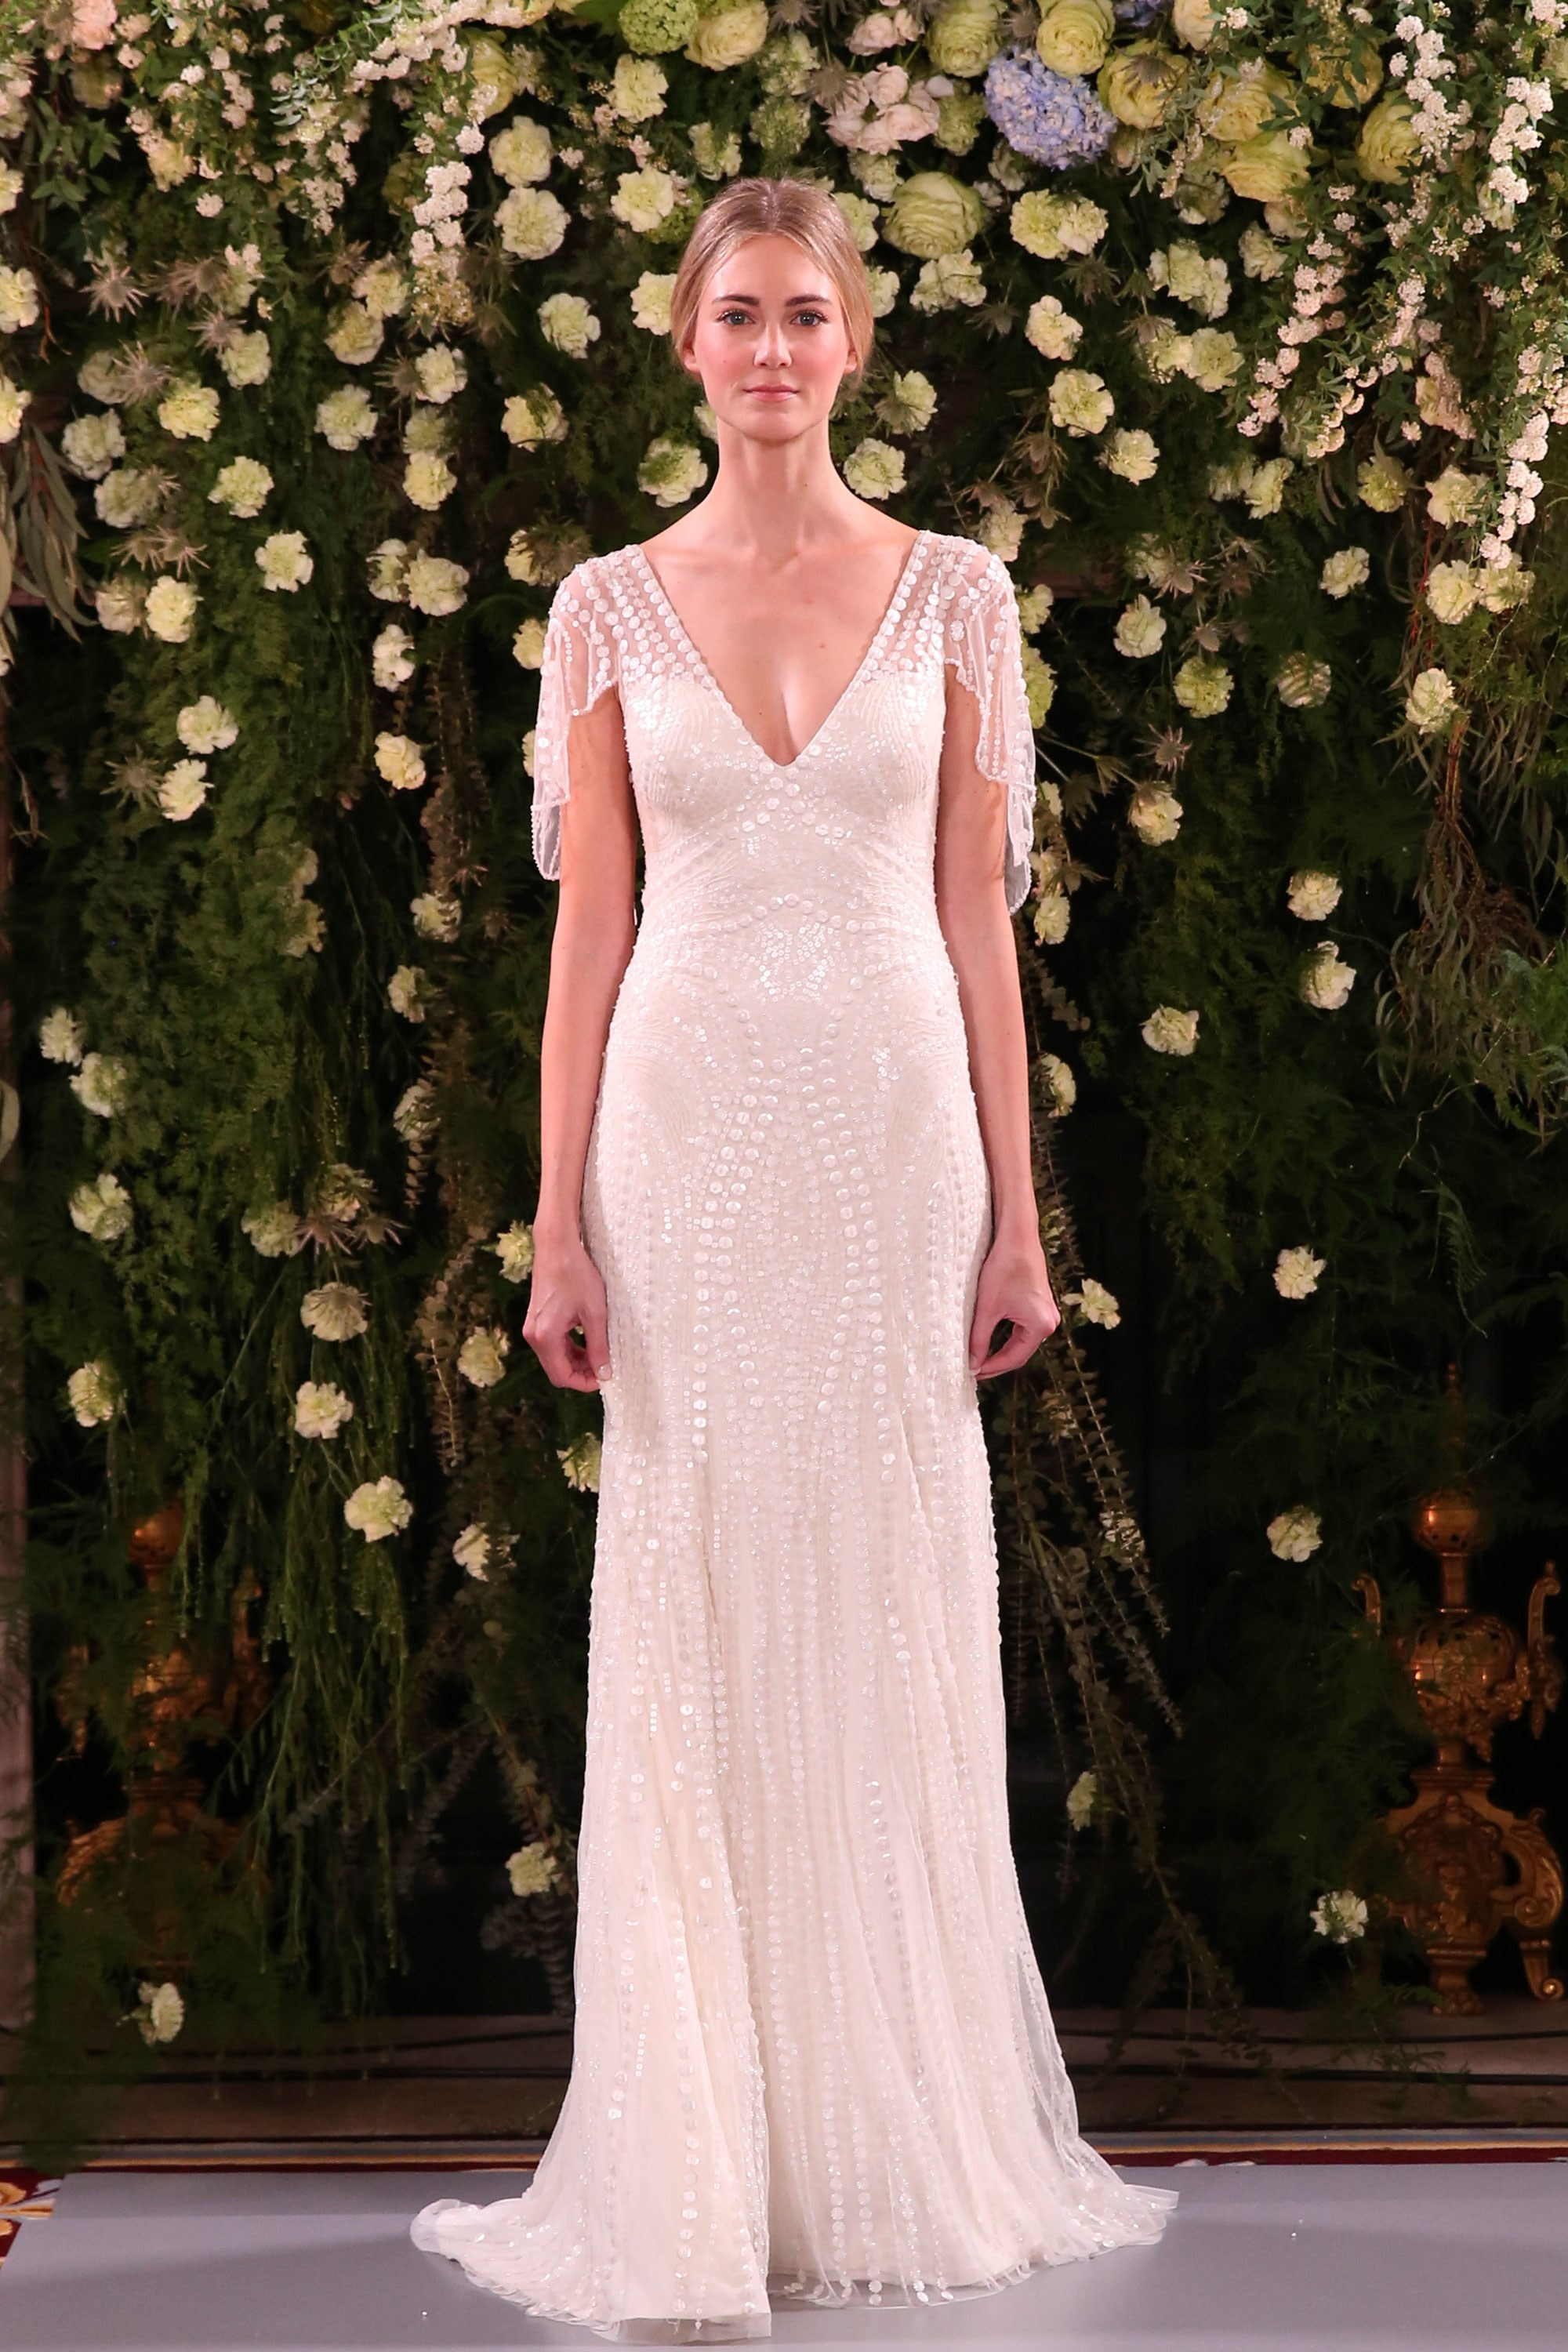 Jenny Packham Bridal Spring 2019 Collection